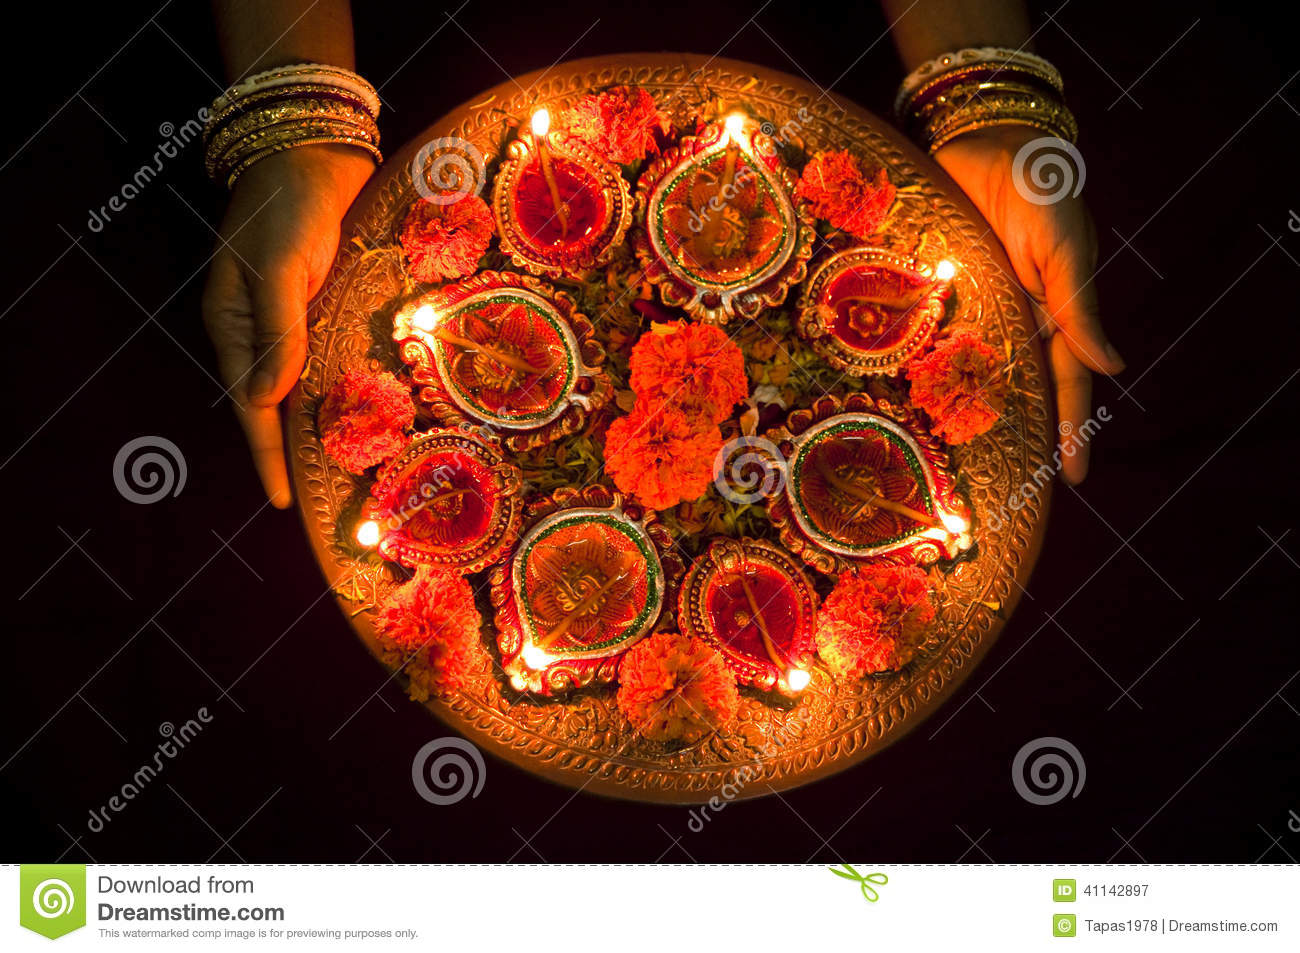 Earthen Lamp Diwali Hands Holding Diwali Lamps Stock Photo Image 41142897